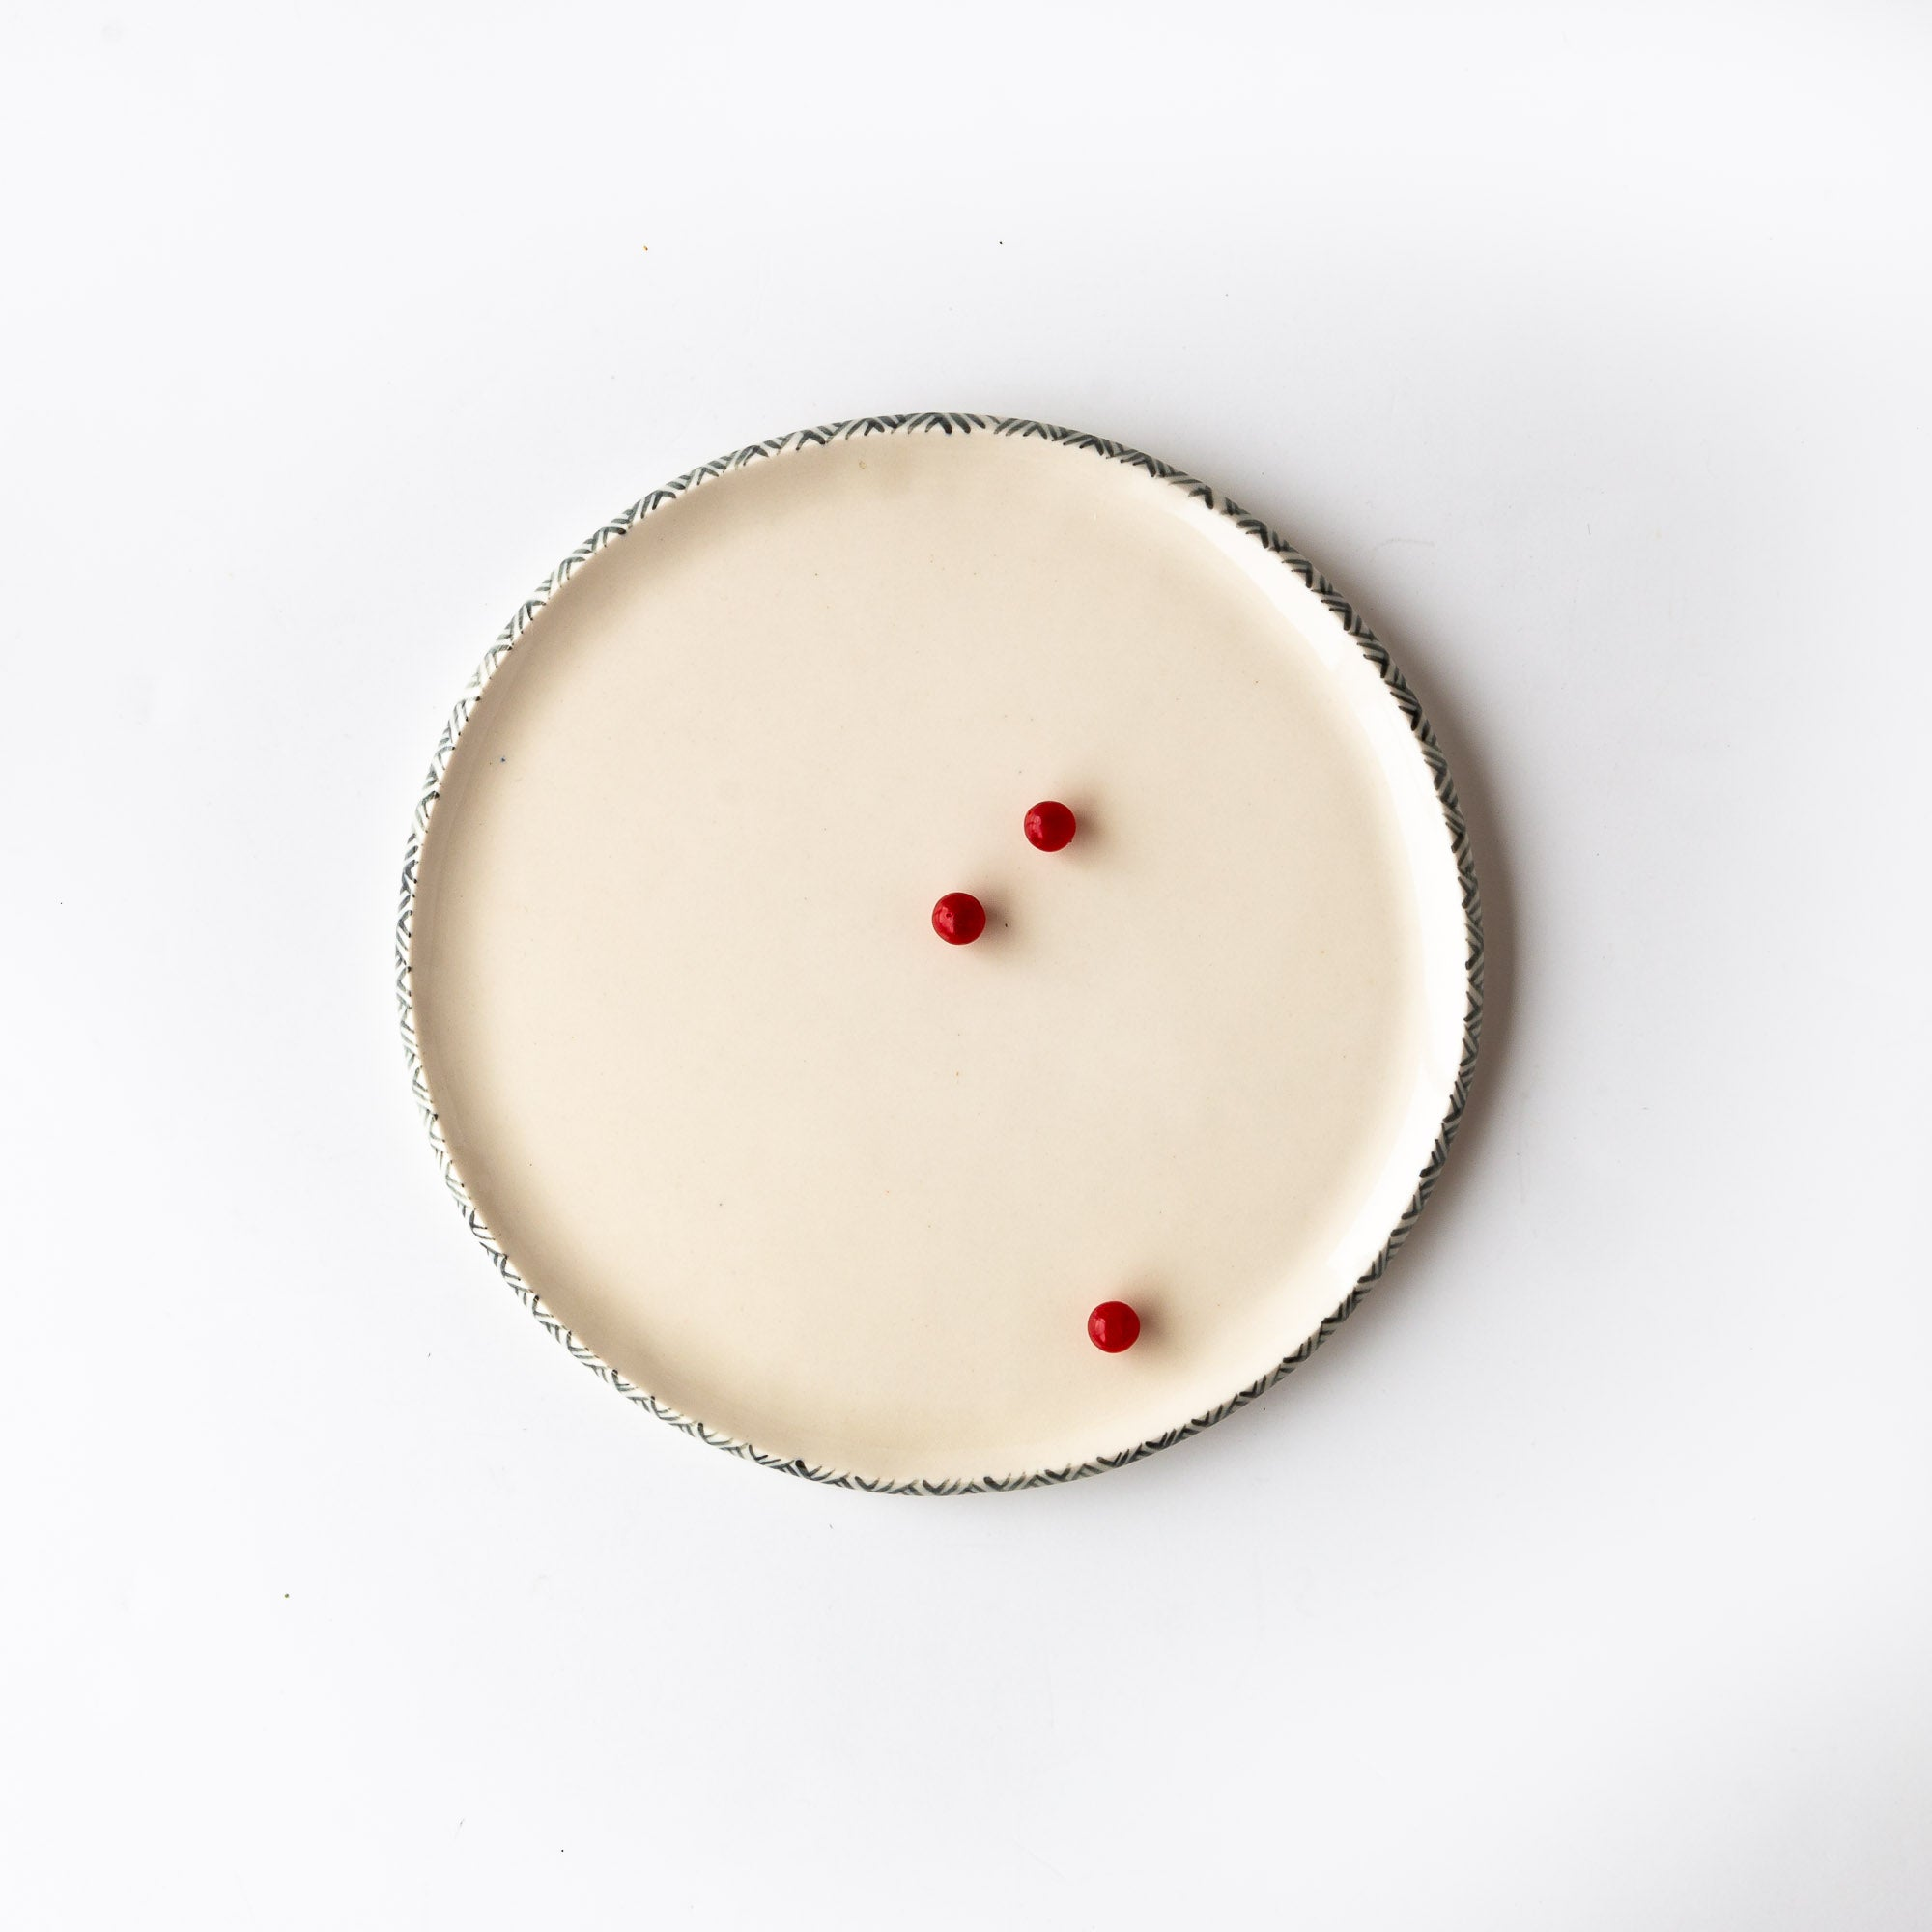 Top View With Fruits - Medium Handmade Porcelain Plates With Rim Adorned With a Painted Frieze - Sold by Chic & Basta